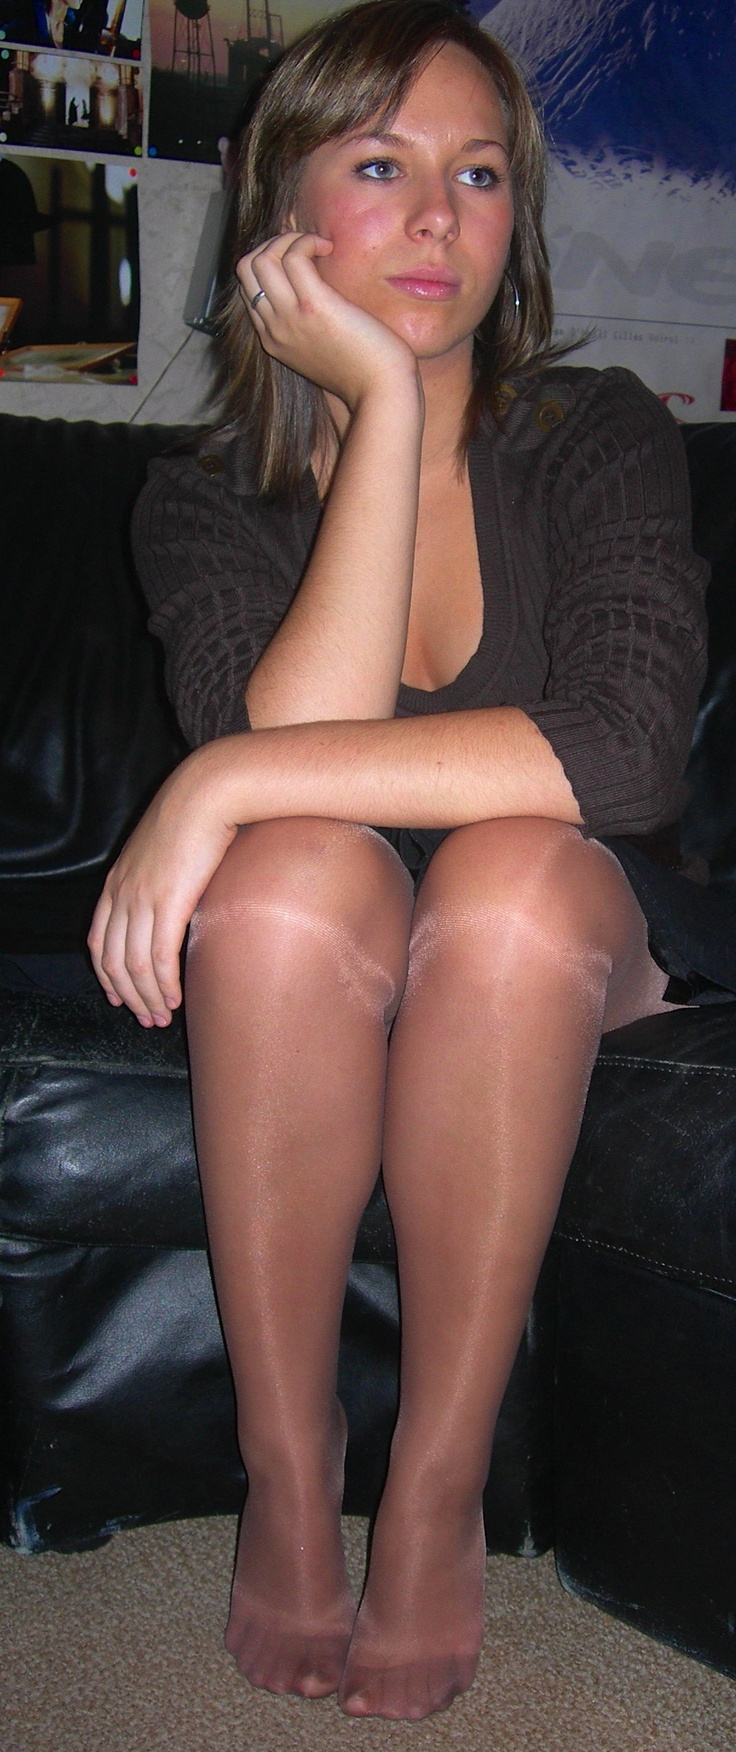 Alcohol in pantyhose